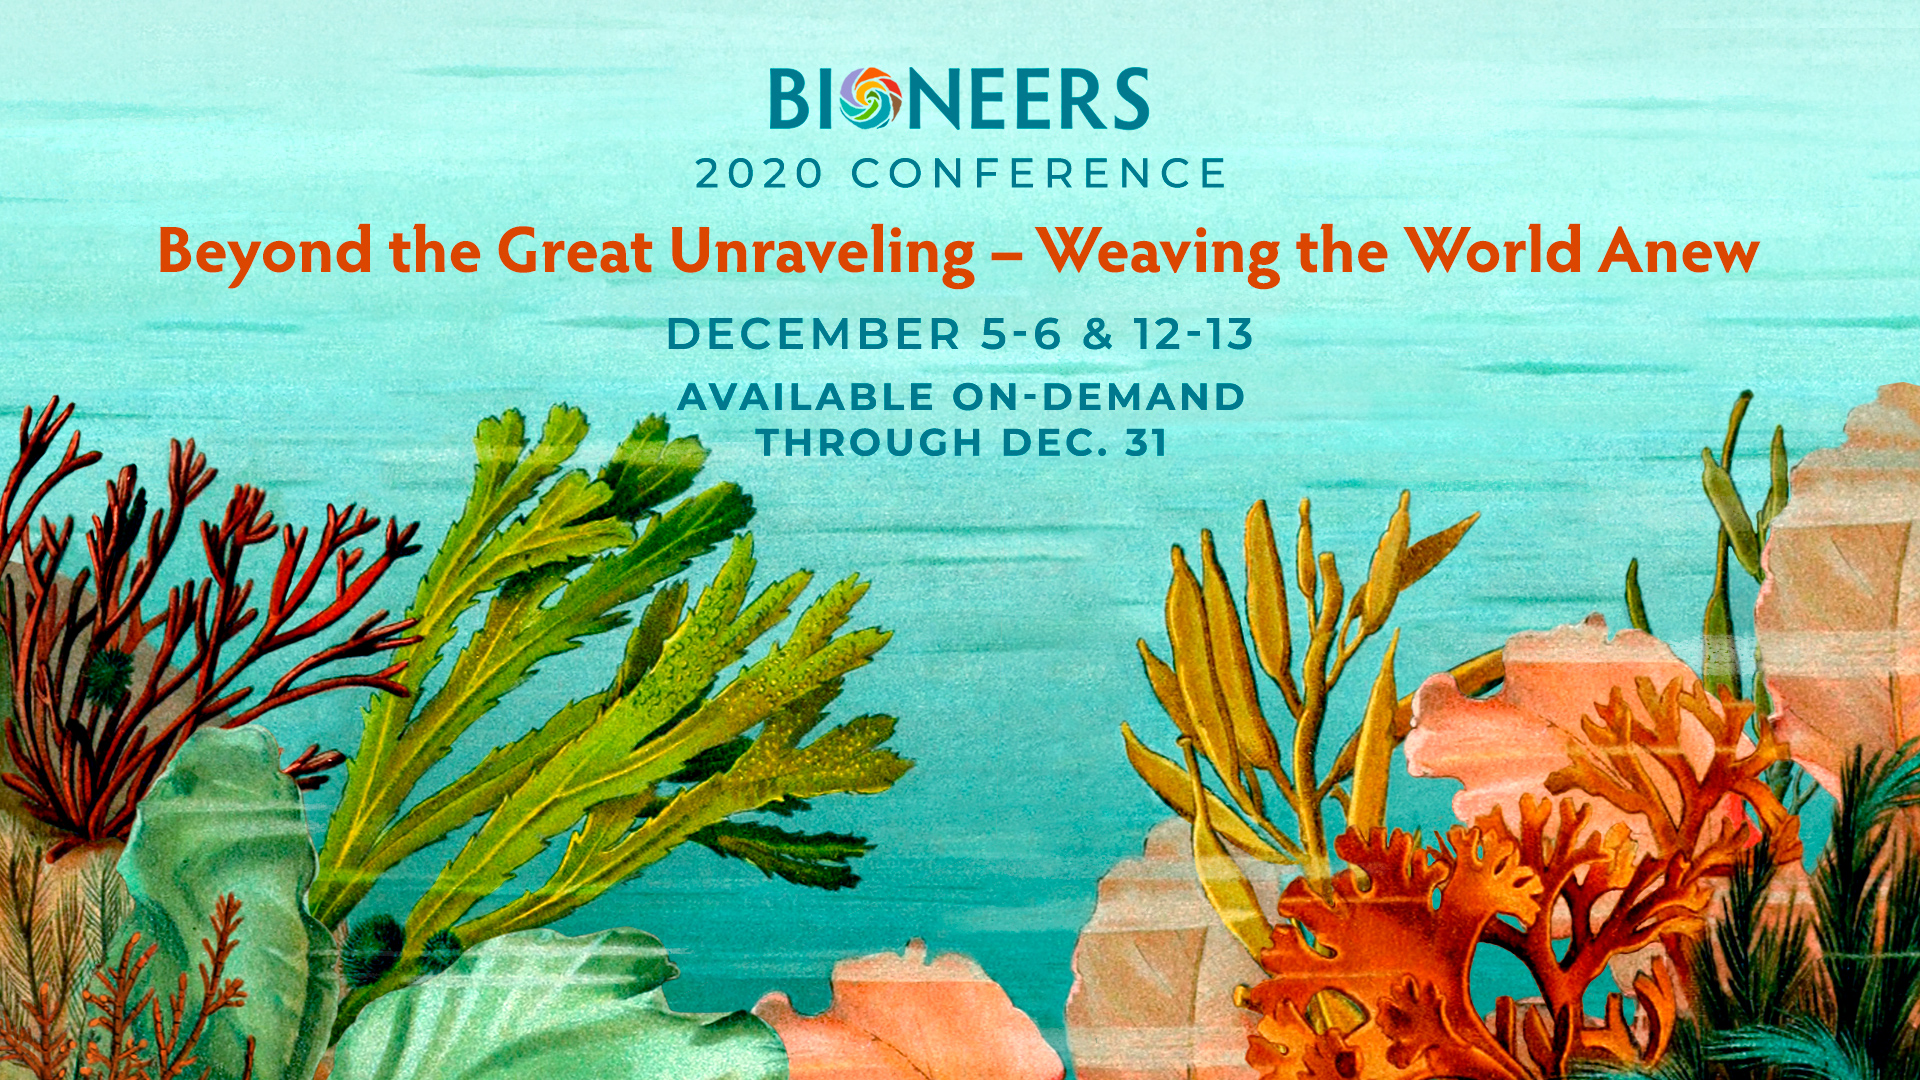 Bioneers 2020 Conference - Beyond the Great Unraveling: Weaving the World Anew